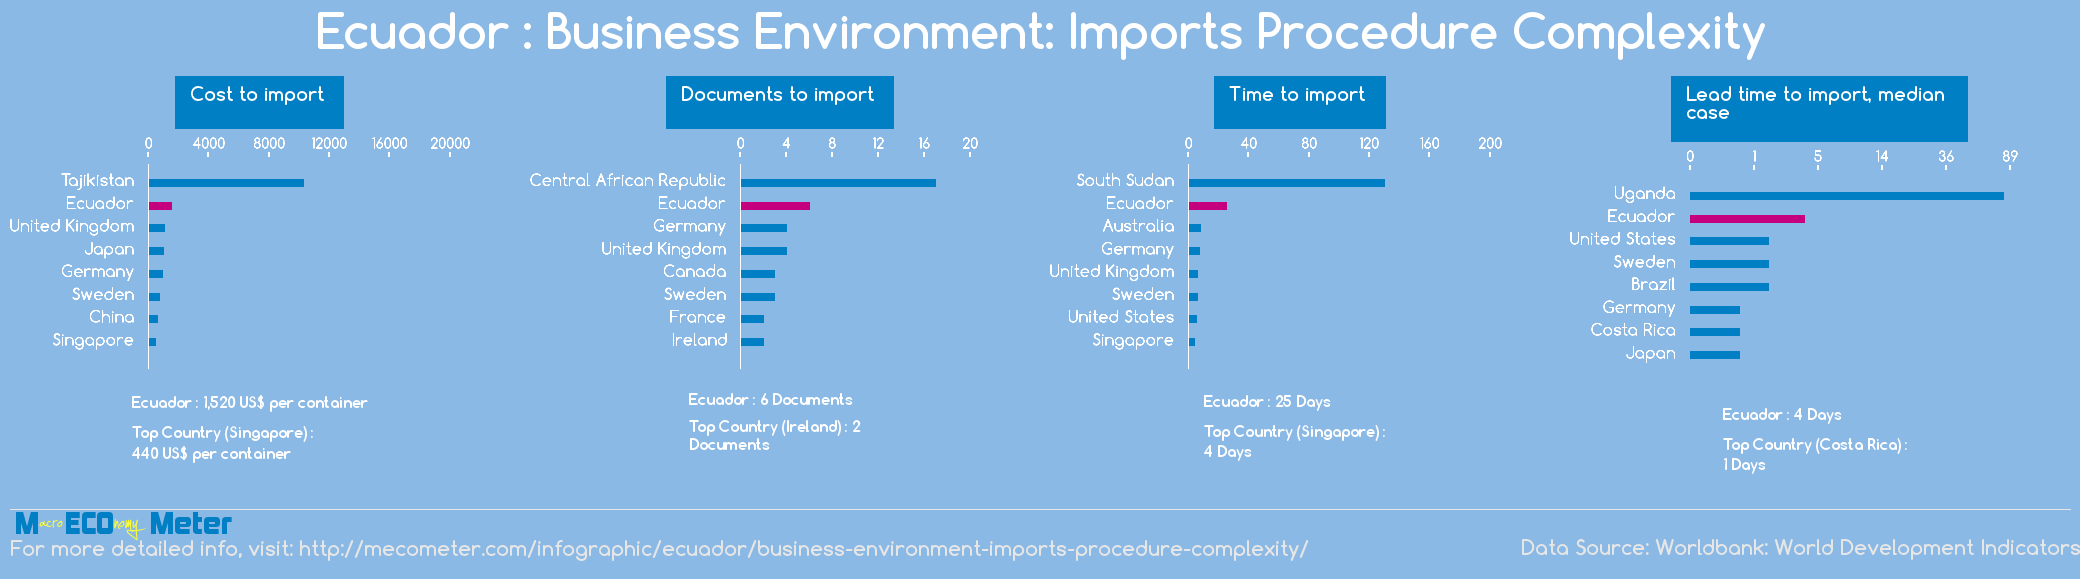 Ecuador : Business Environment: Imports Procedure Complexity